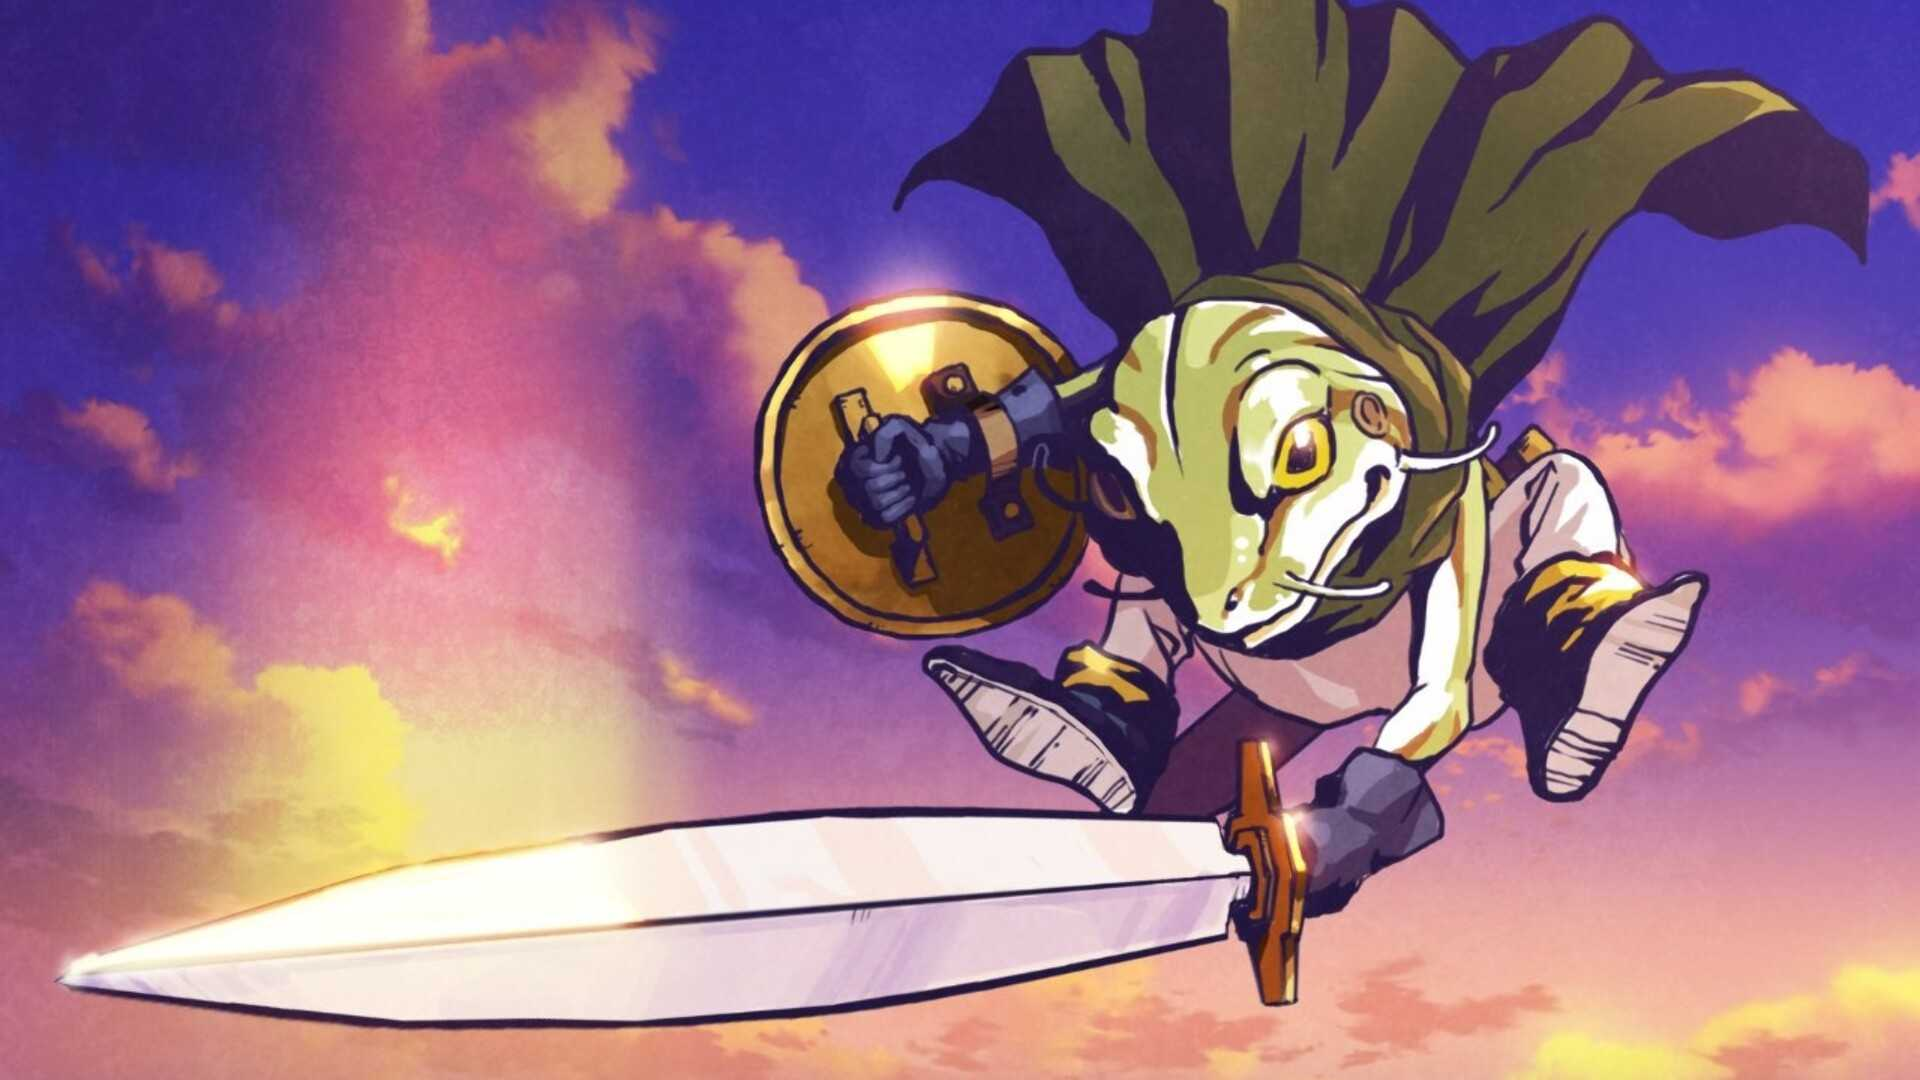 Chrono Trigger Wallpapers 1